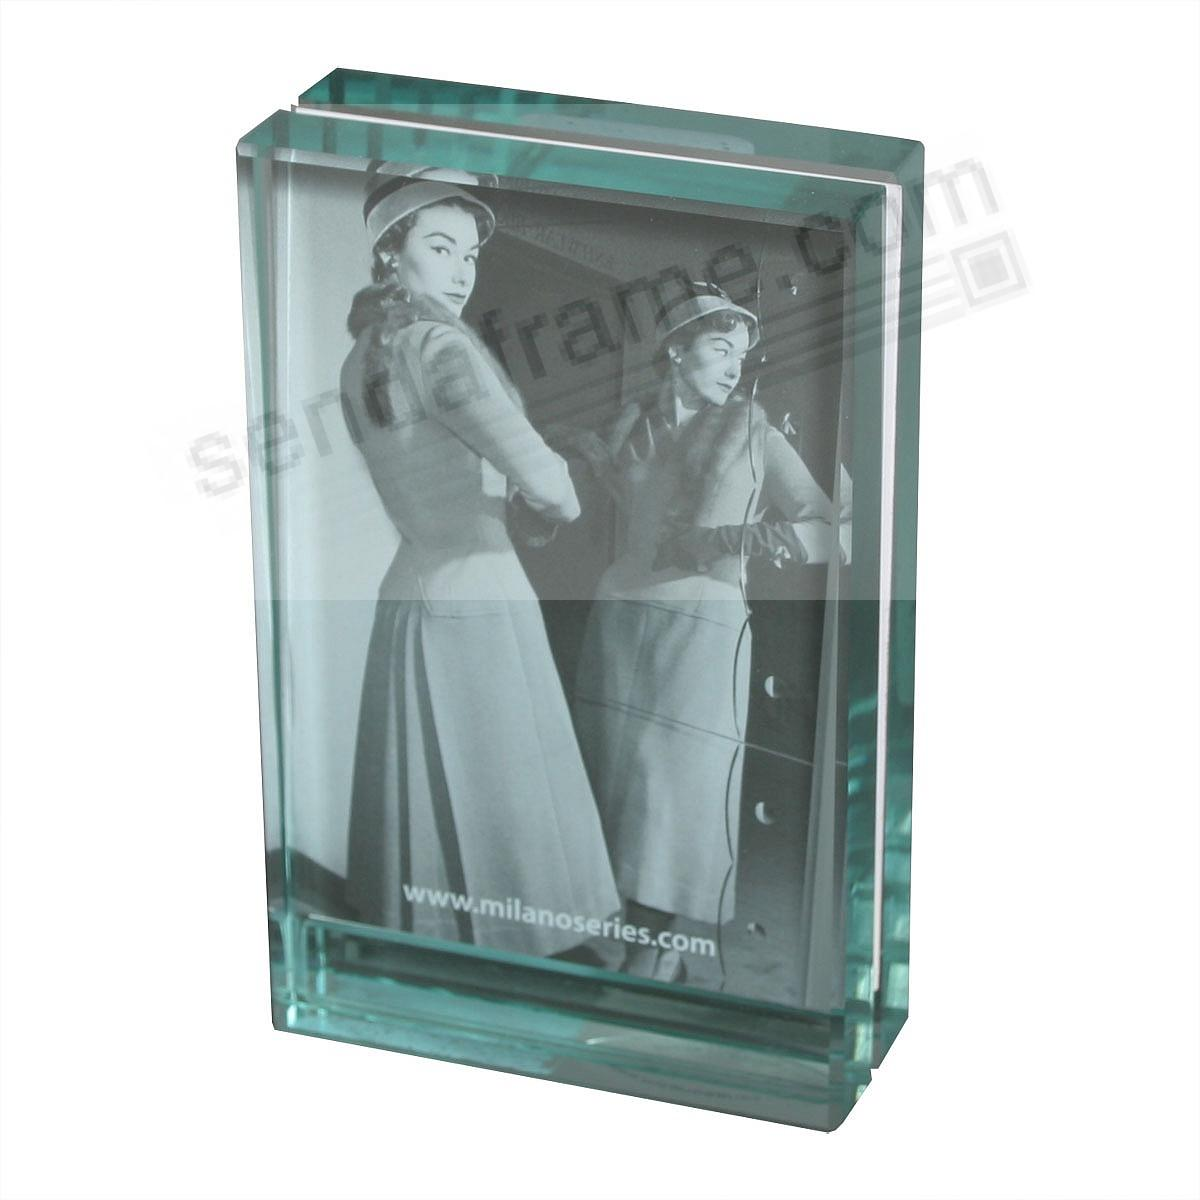 Clarity glass block 2 x3 frame by milano series for Glass block window frame